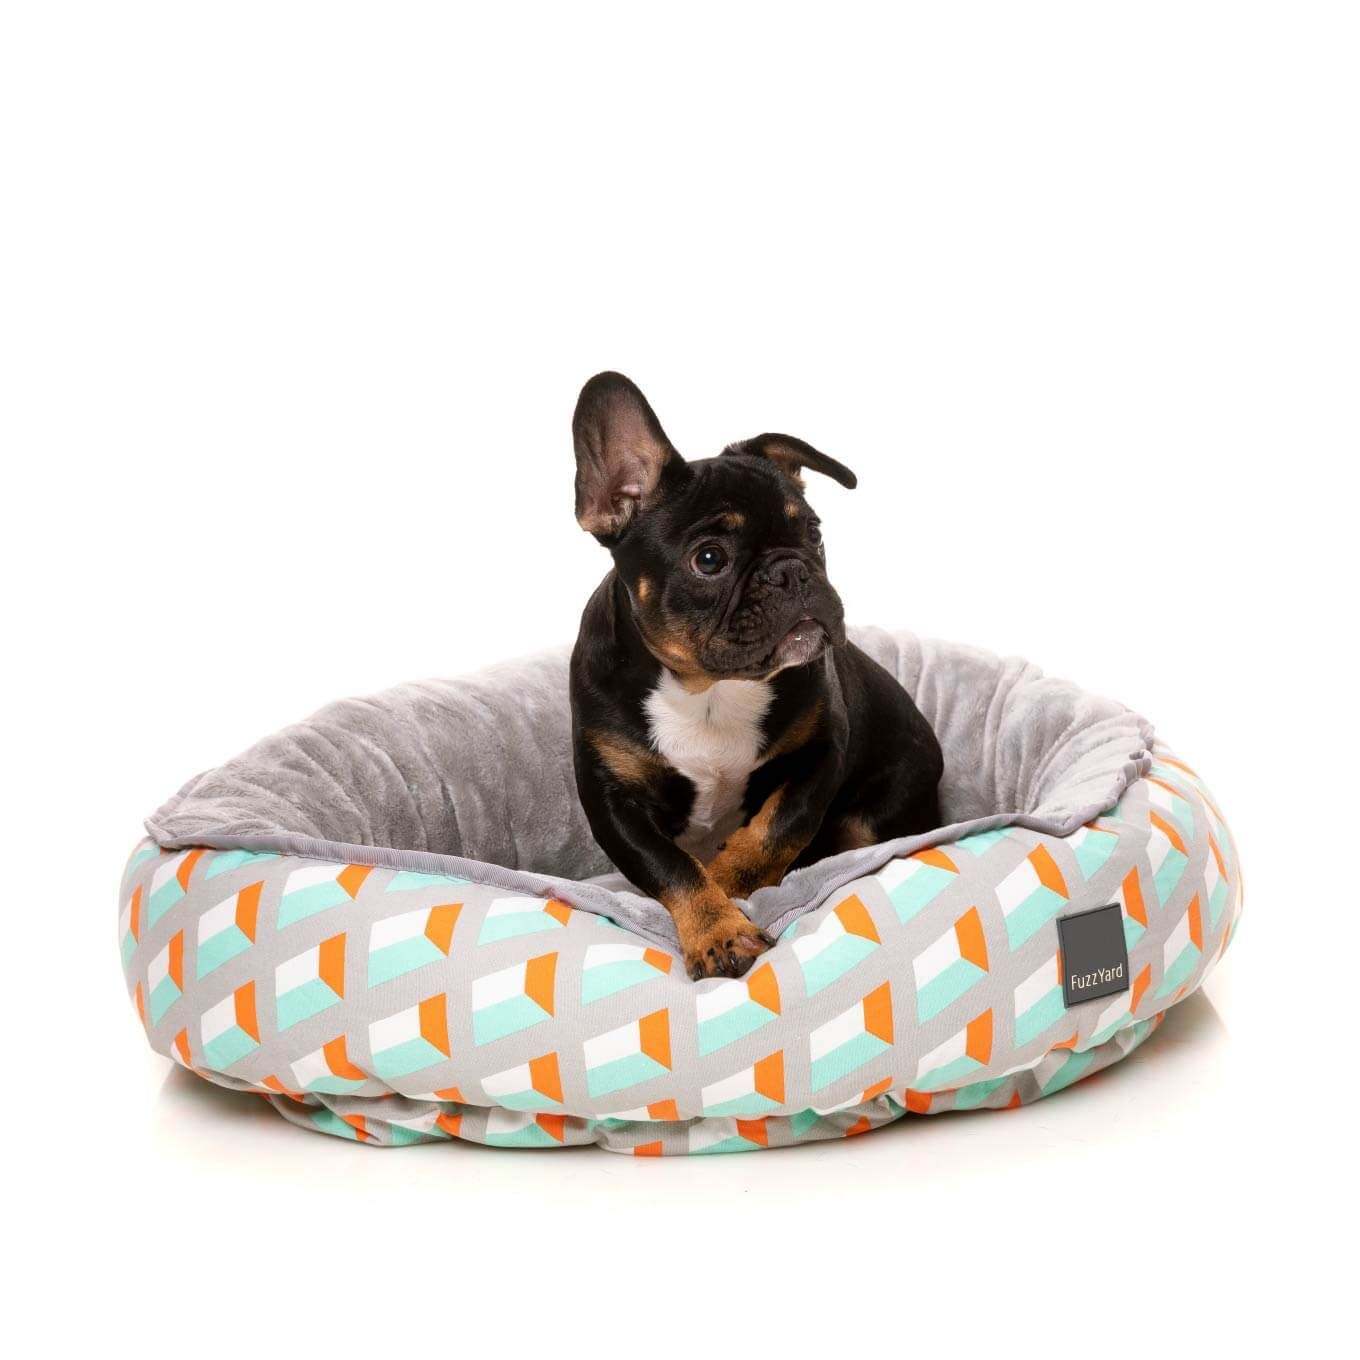 FuzzYard San Antonio Reversible Pet Bed - Vanillapup Online Pet Store